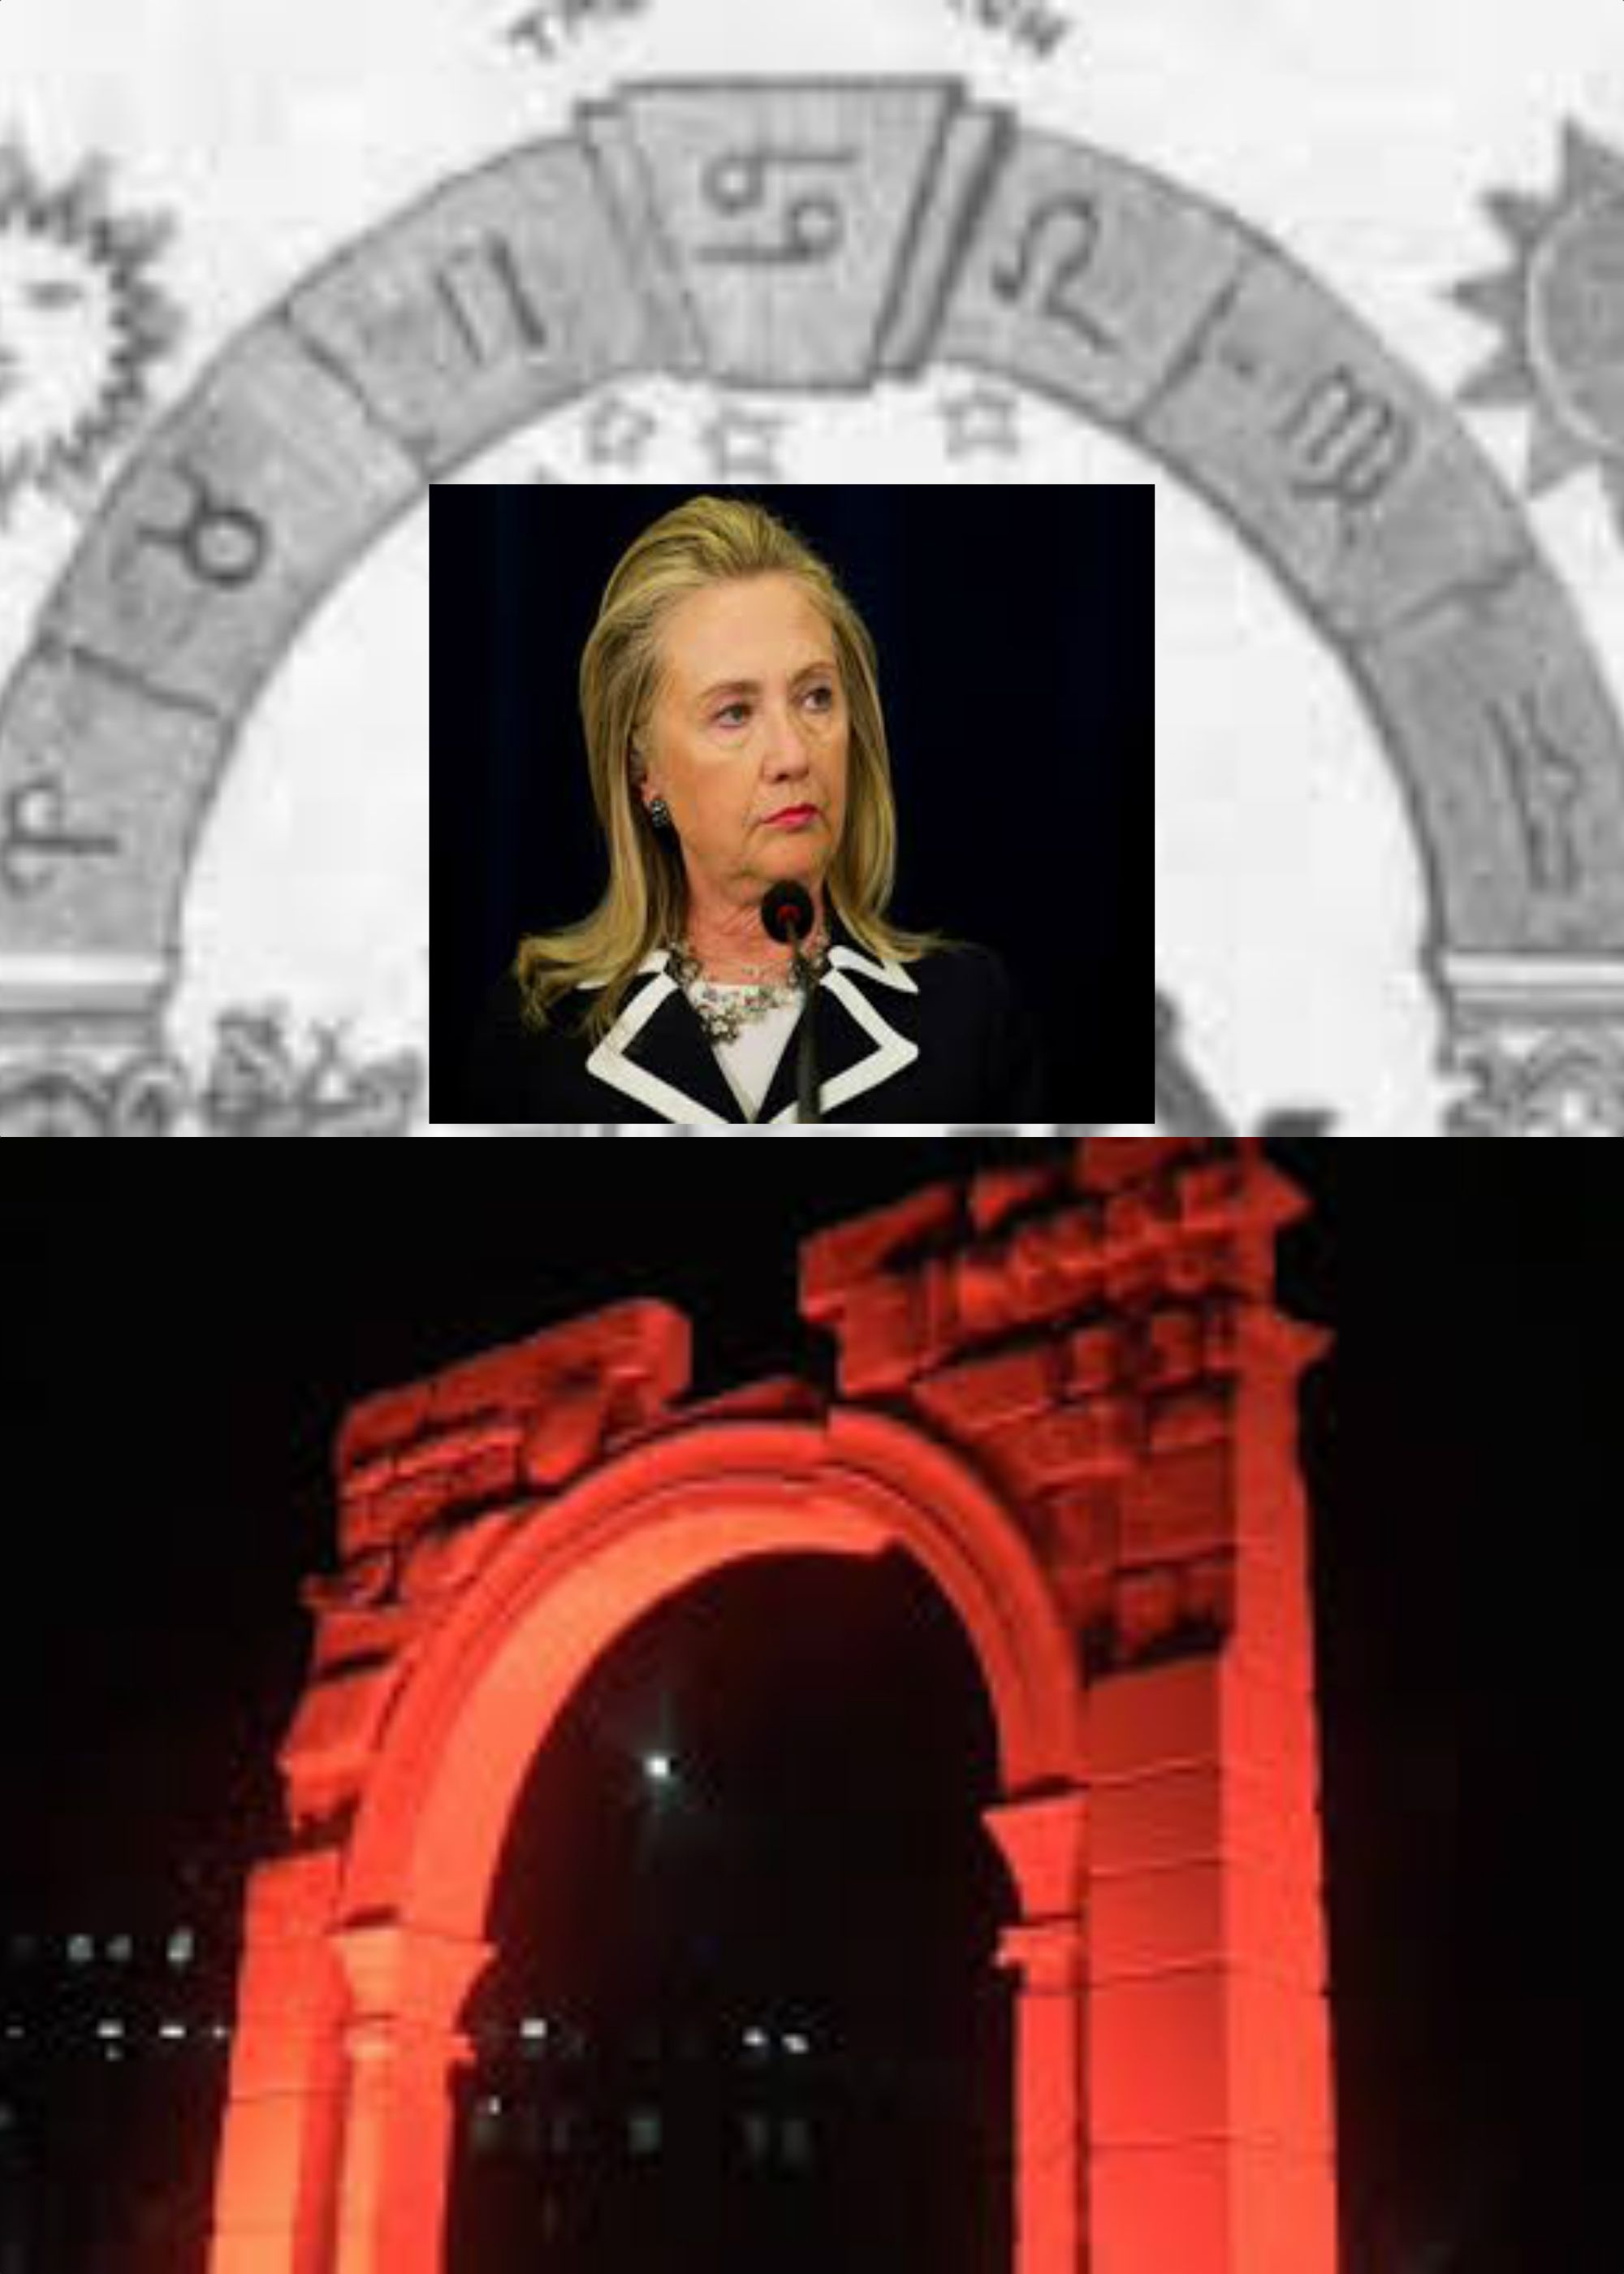 From the Arch of Baal going up in NY where Hellery was Senator to her 69th Birthday is 37 days. 37=EL=god - their god. Notice the capstone is missing on the arch. So is Hellery the capstone?